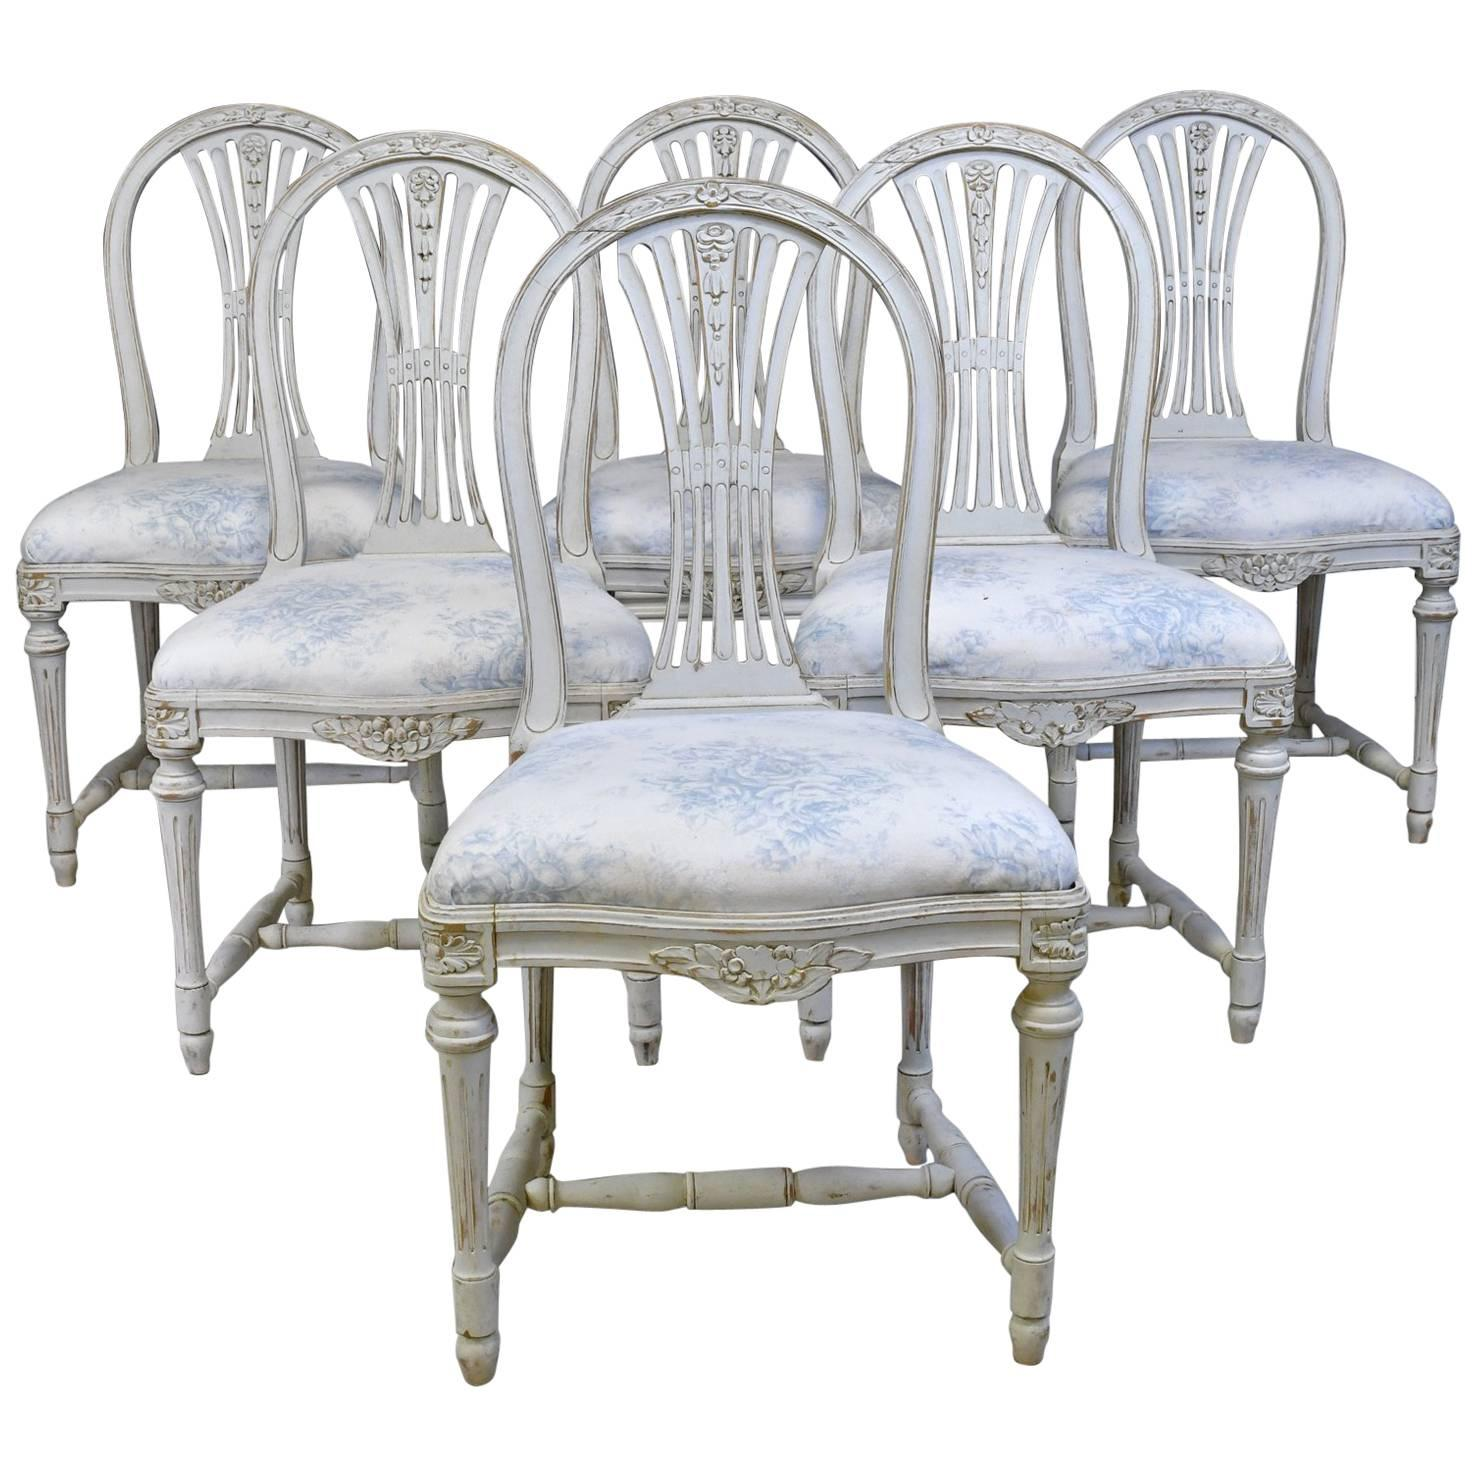 Set of Six Swedish Gustavian-Style Painted Dining Chairs,  c. 1890-1915